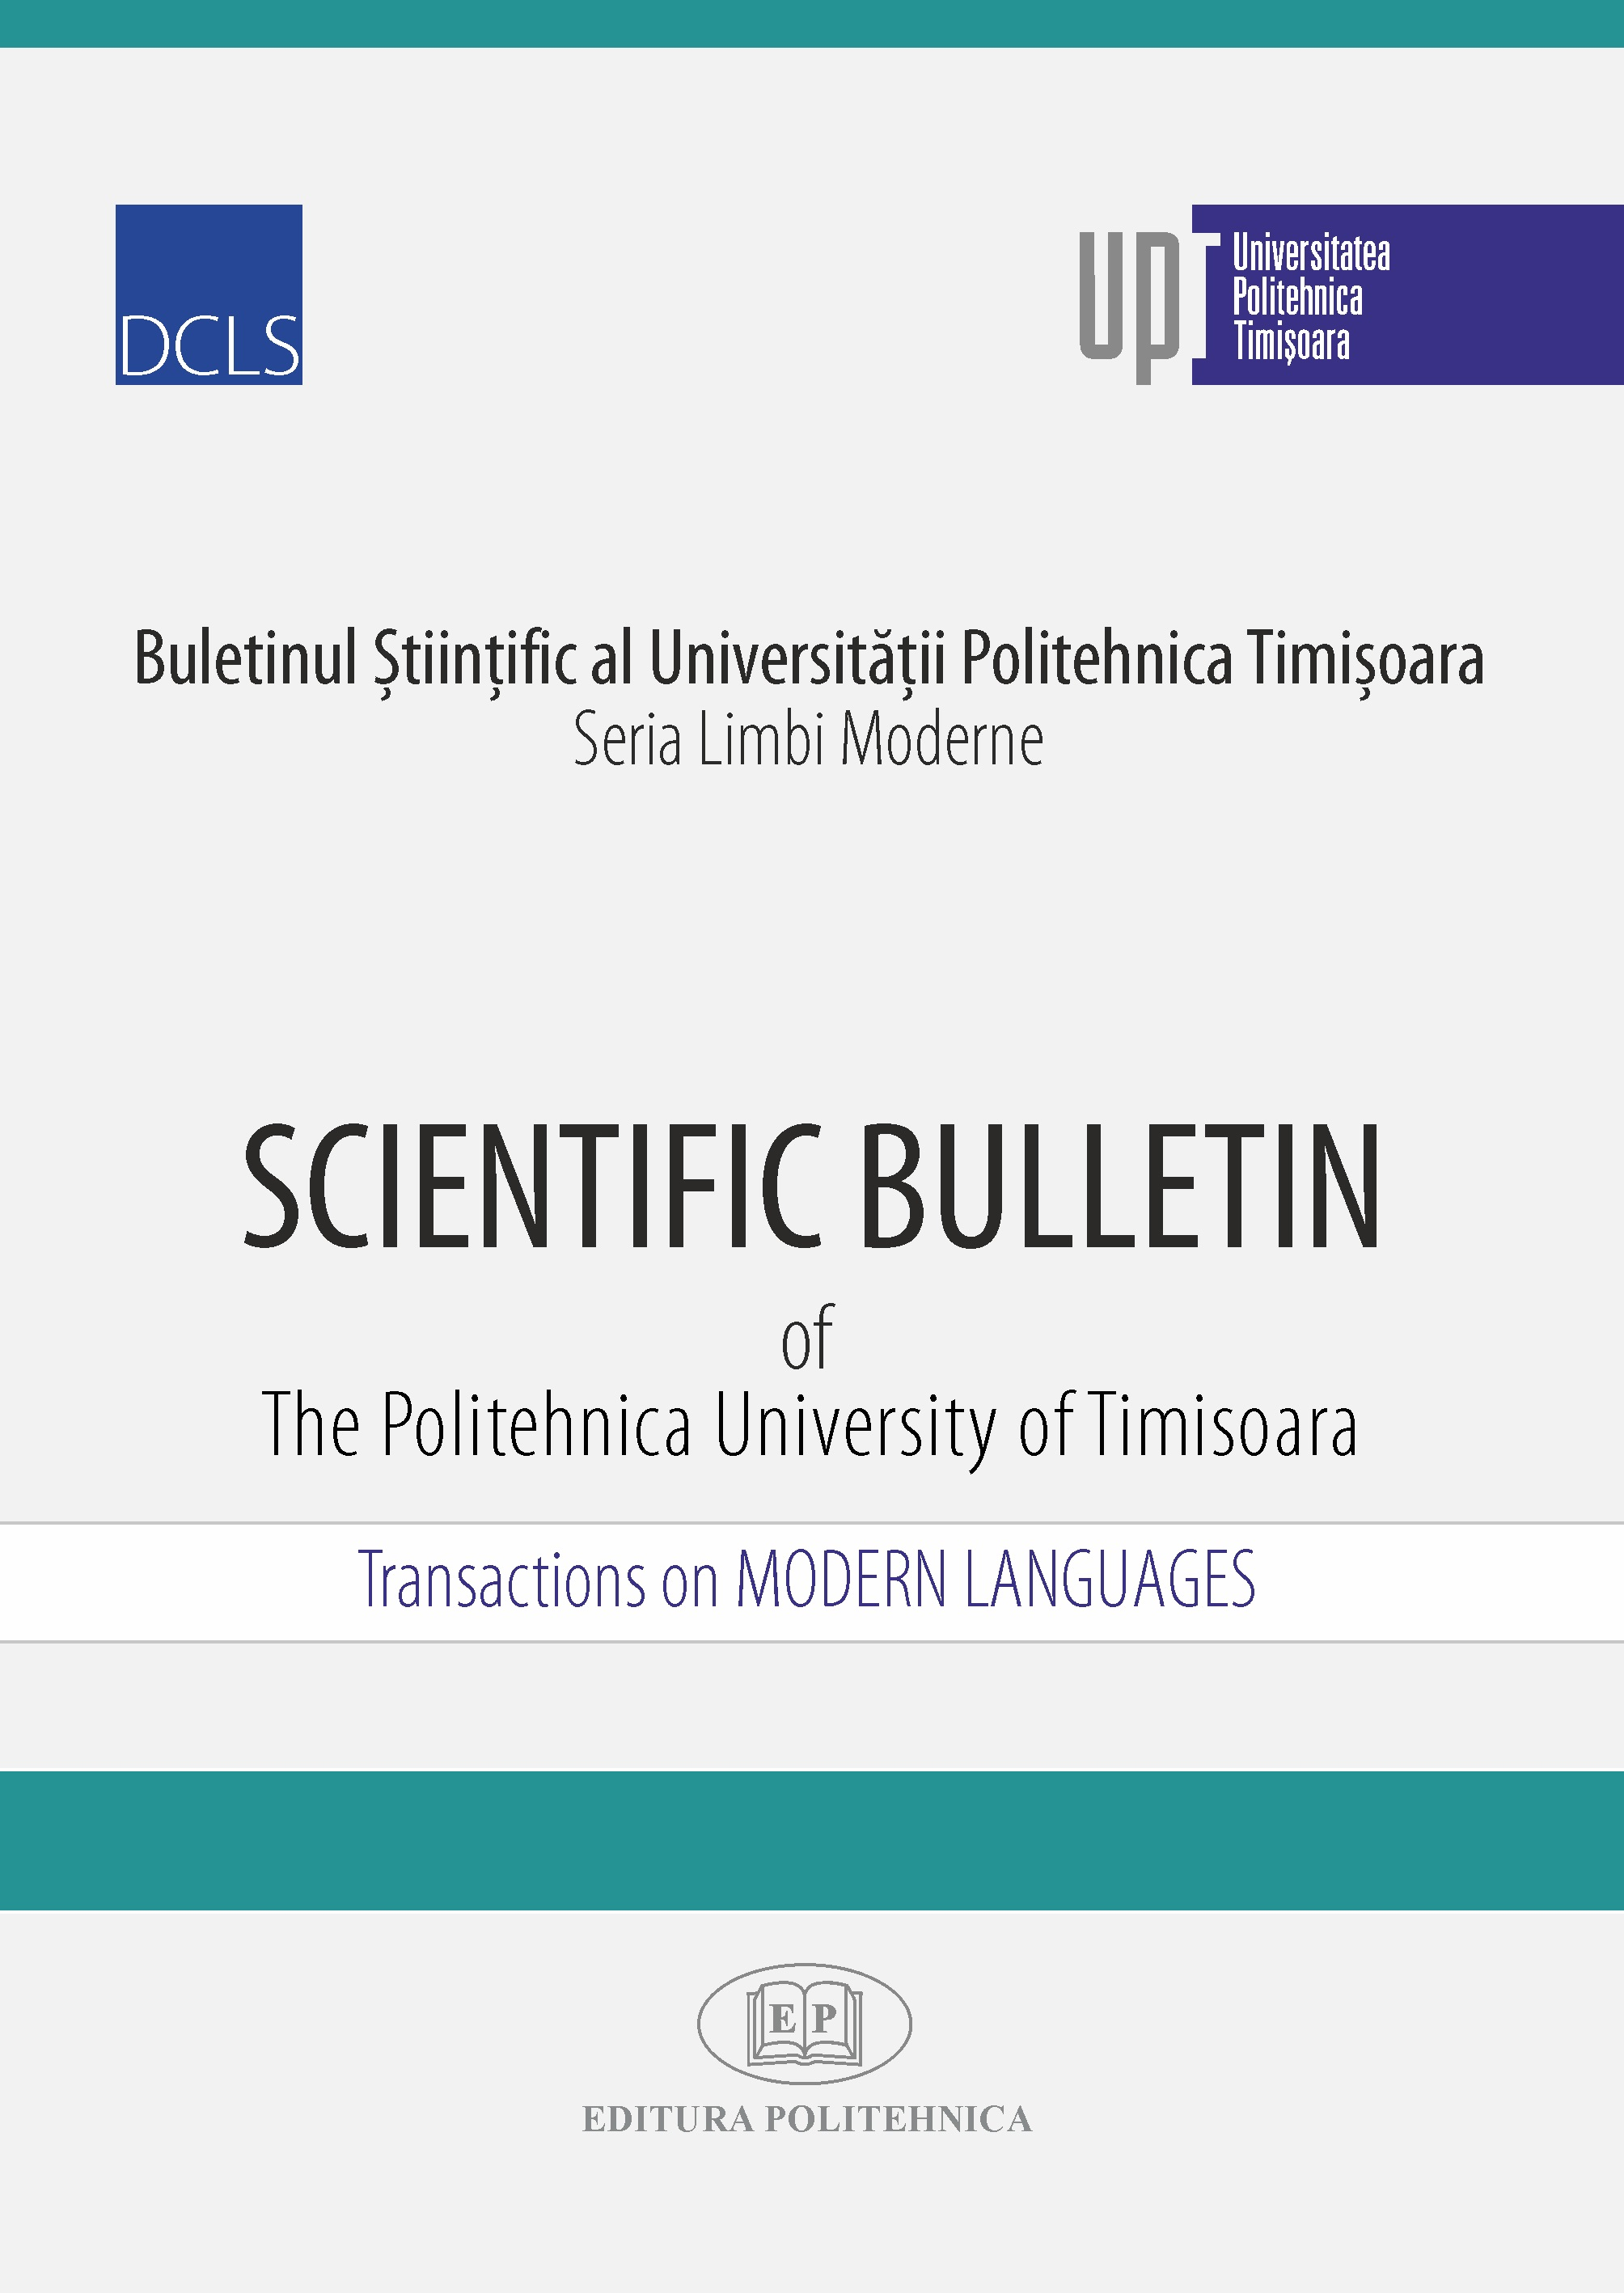 Scientific Bulletin of the Politehnica University of Timisoara, Transactions on Modern languages Cover Image